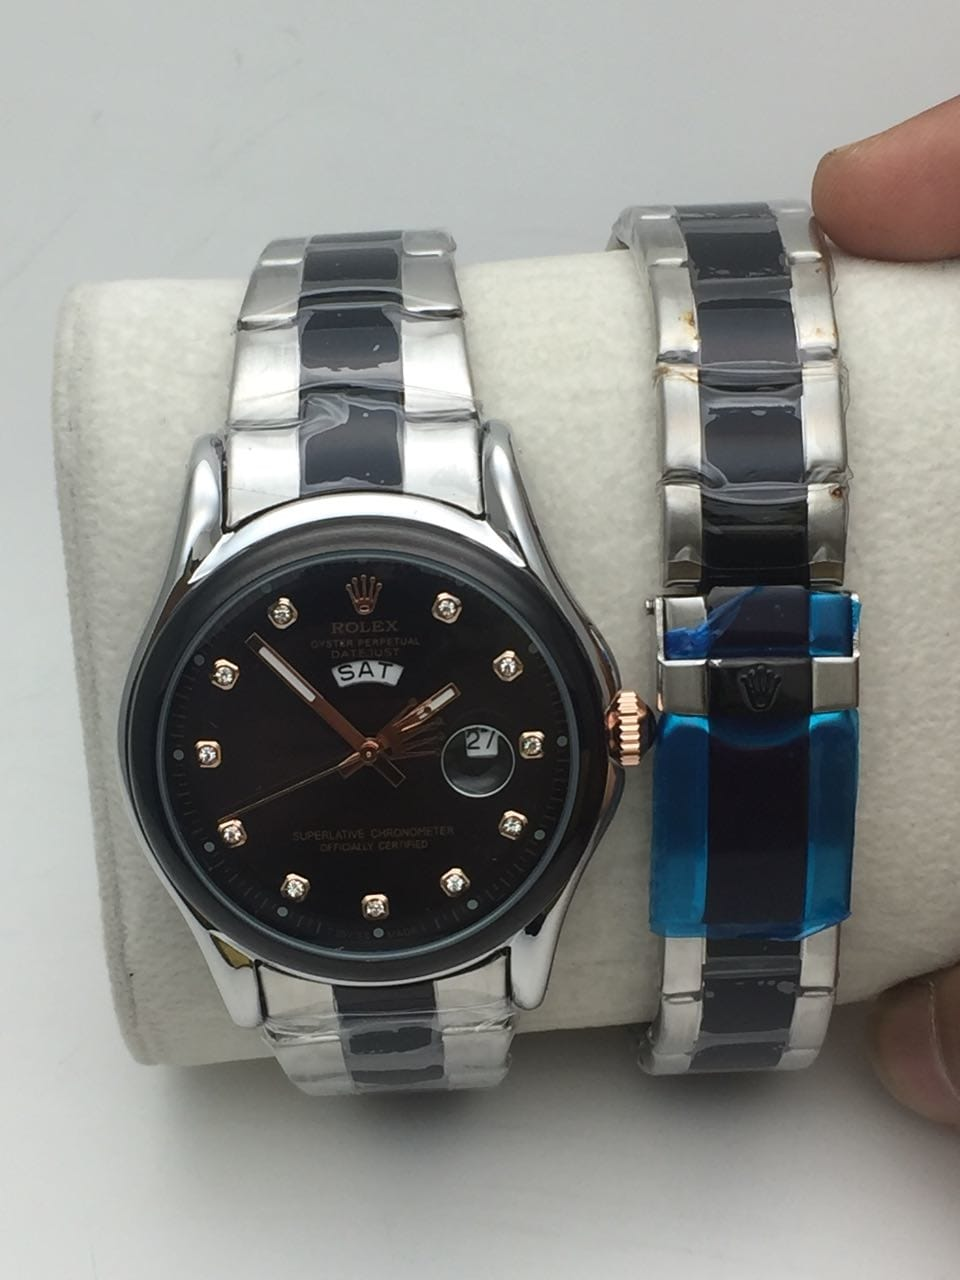 *All Rolex Jents  watch Metal belt😉*  # For All Jents  watch  # Good  Quality in # Features :-,  *Japanese Quartz Machinery* , Genuine Metal Stap, , Solid  Back side and back side of dhakan printed brand logo name  *Note Day and Date both working  *Avlb In Stock 1300    free  😄😄😄shipping free with normal box* 👌🏻